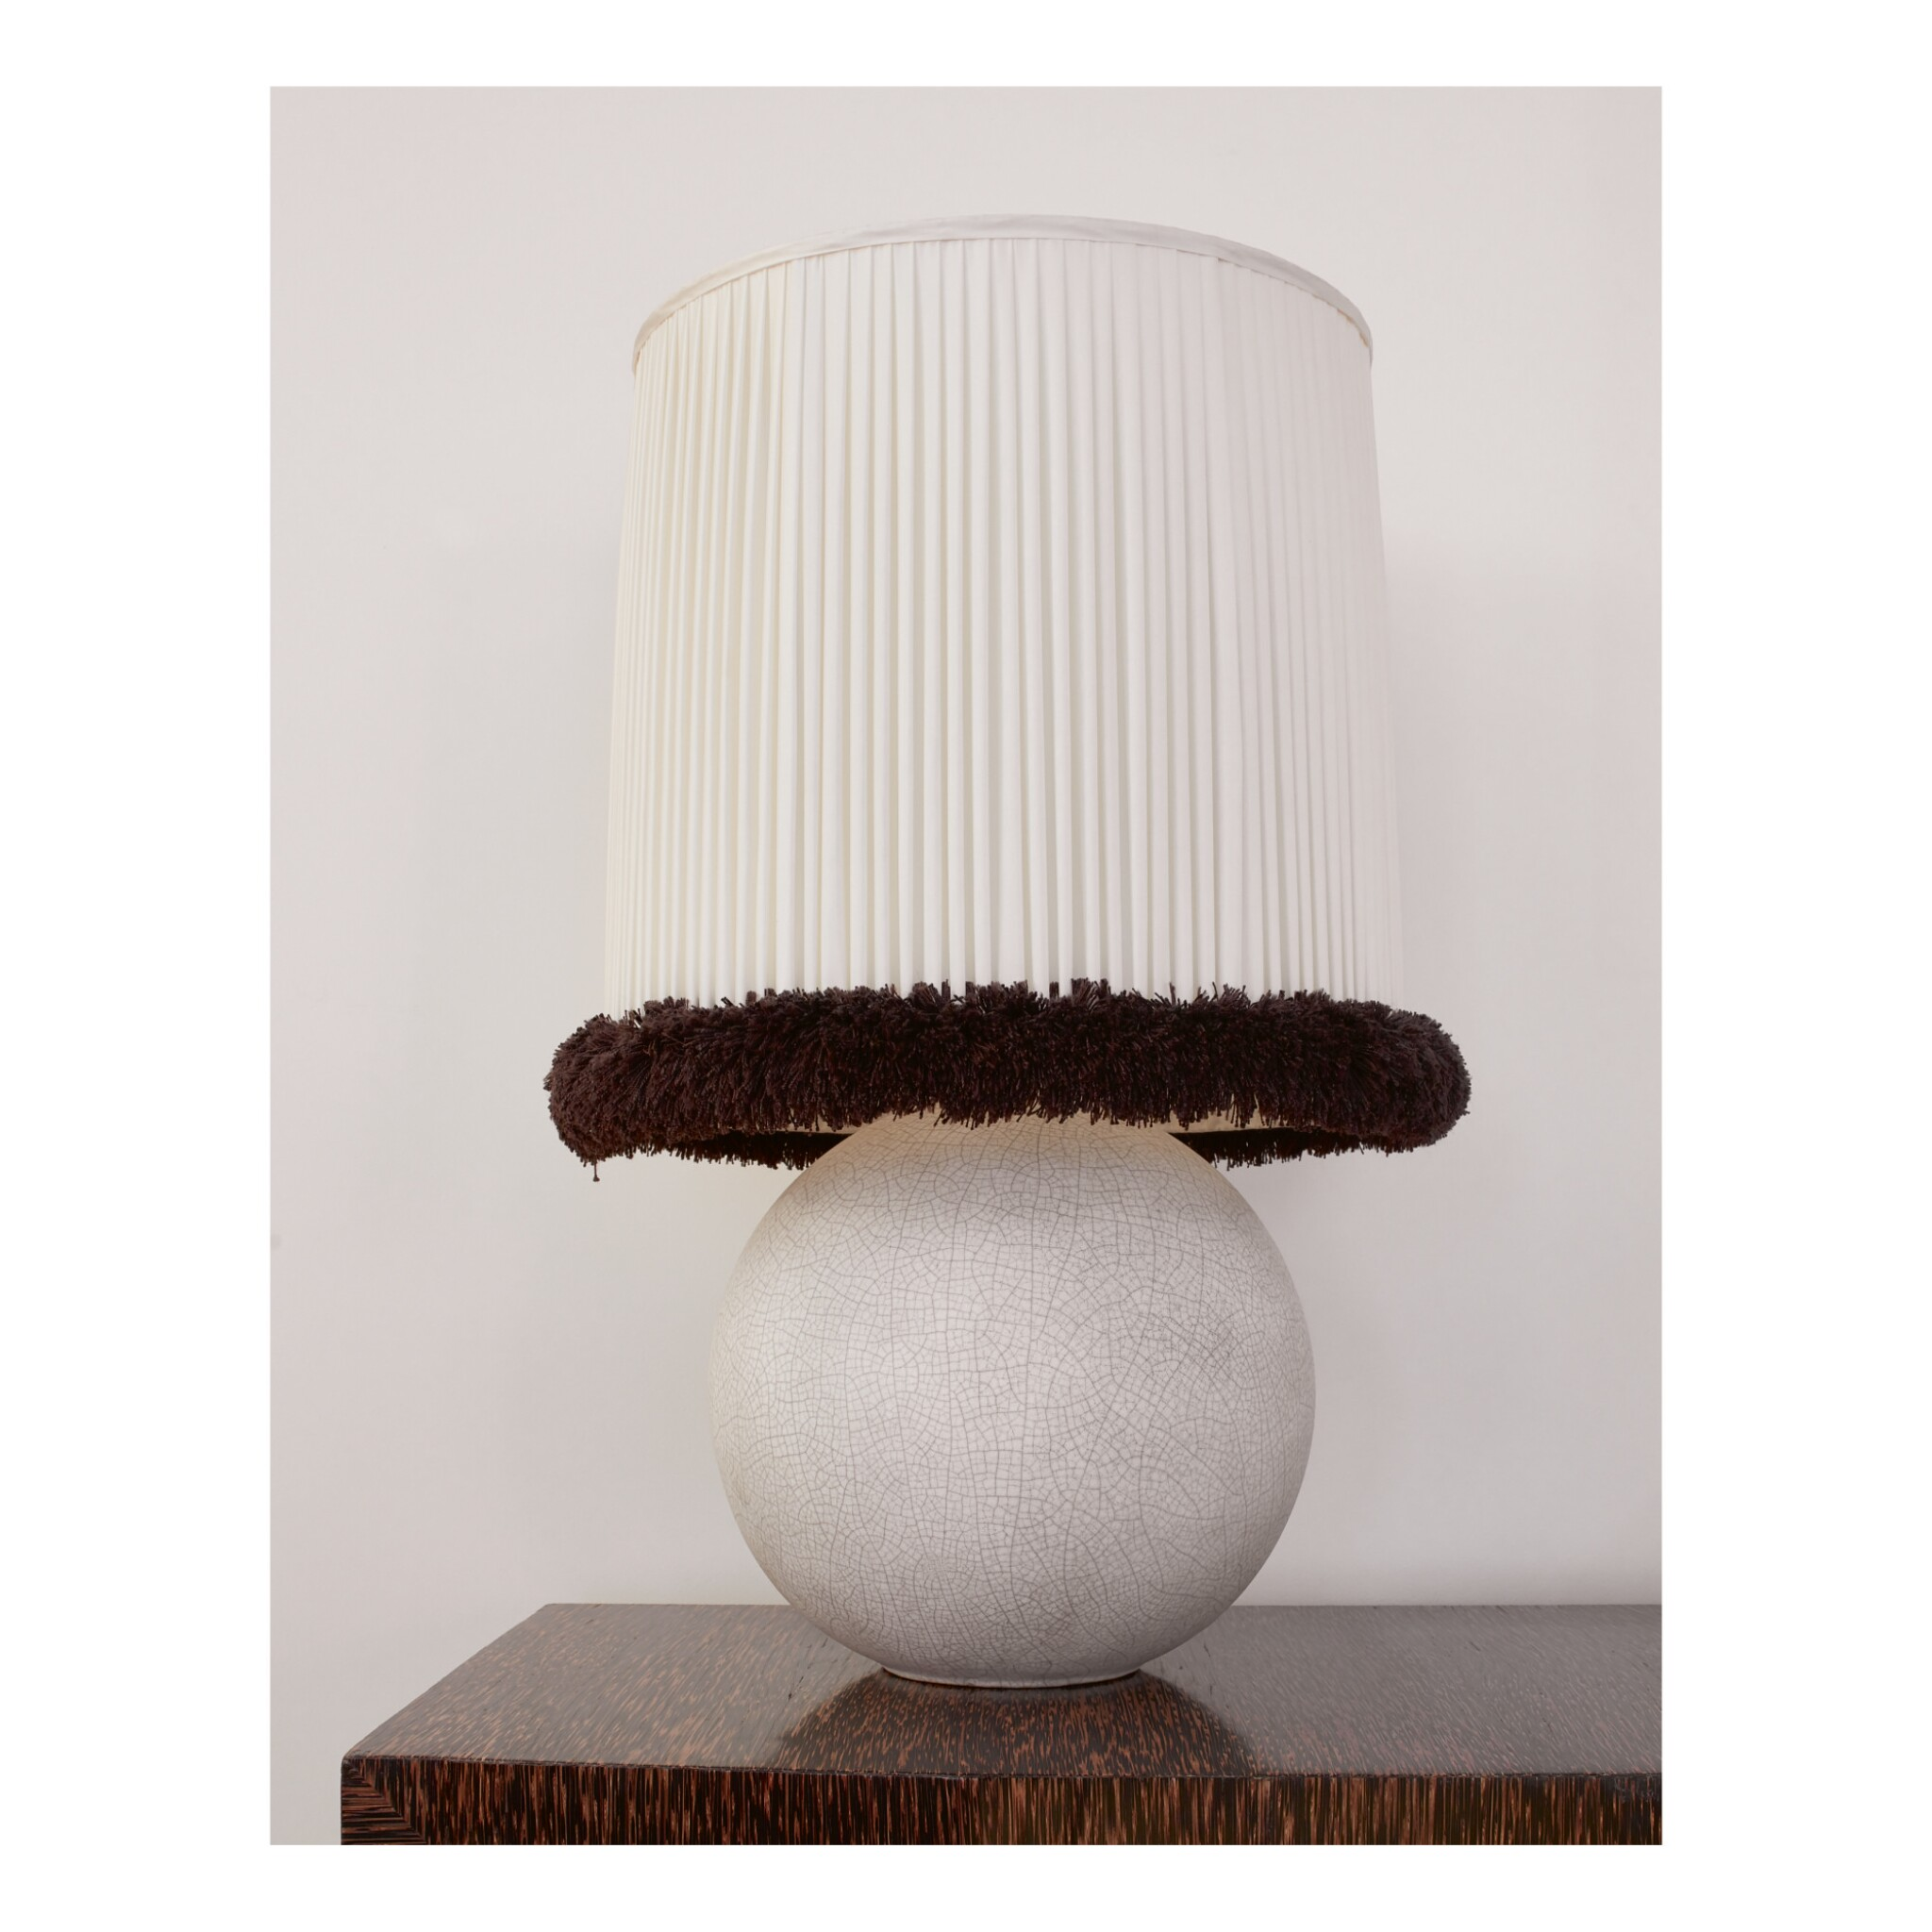 JEAN BESNARD FOR ÉMILE-JACQUES RUHLMANN | TABLE LAMP